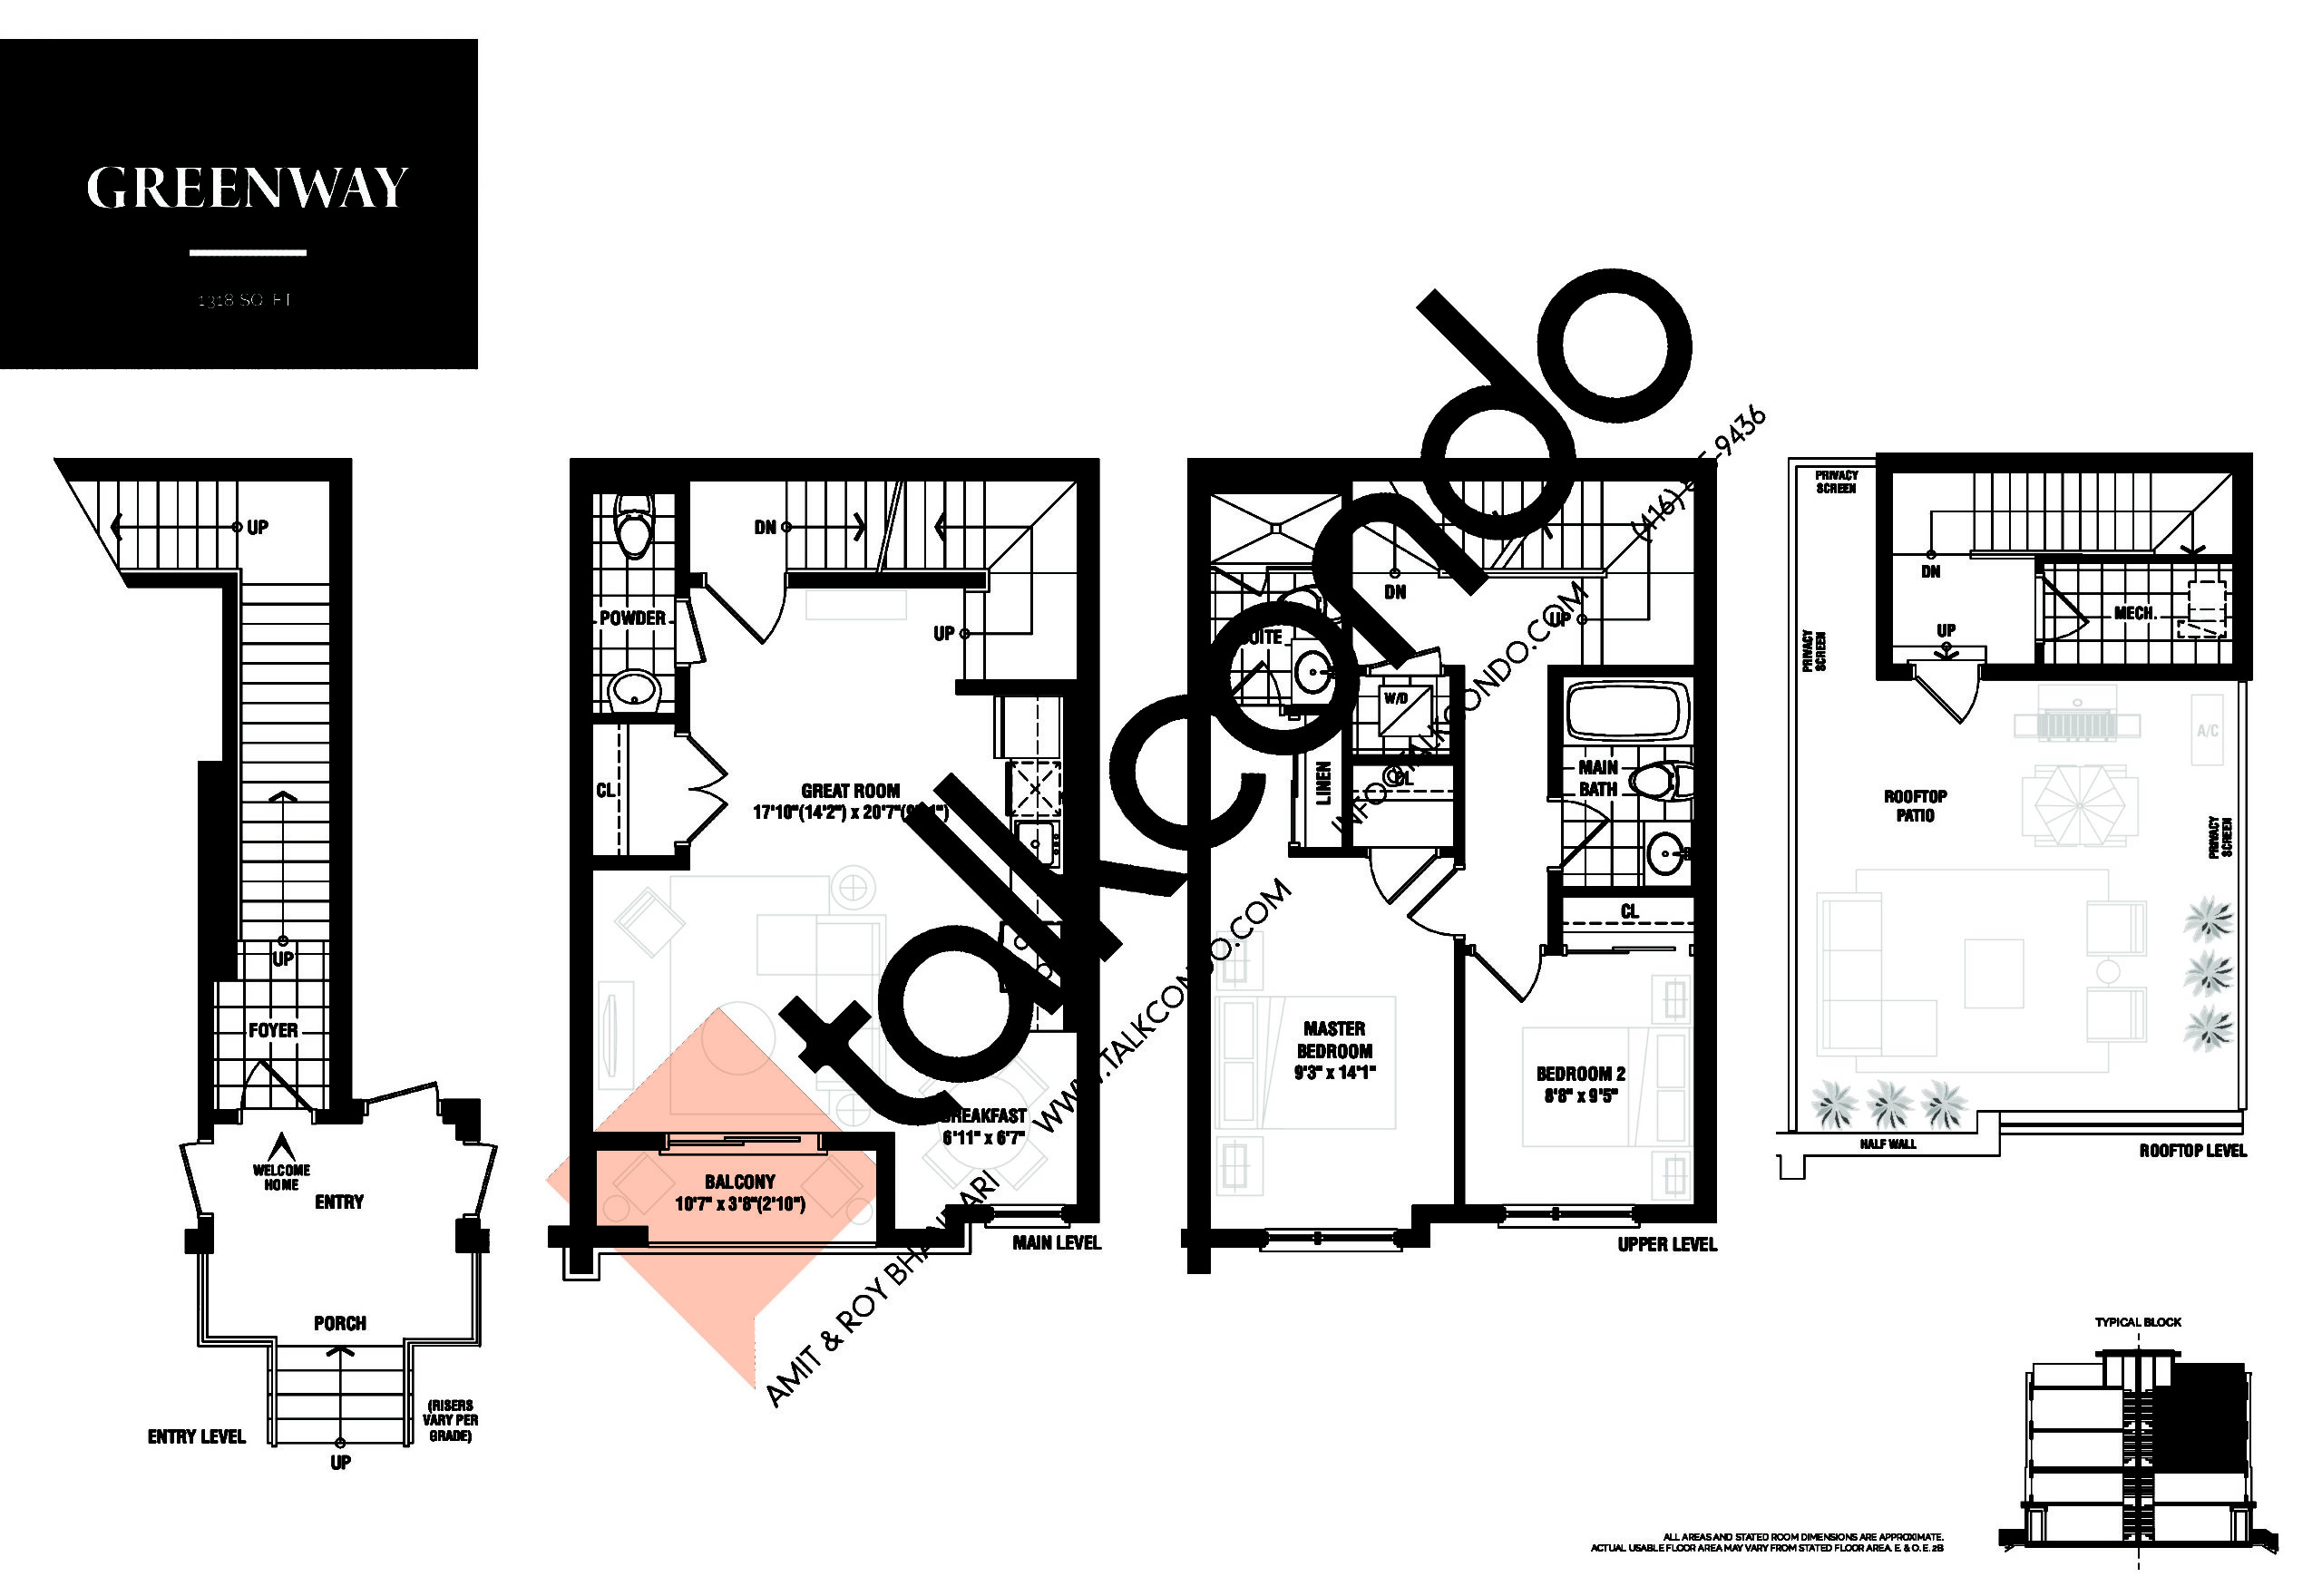 Greenway Floor Plan at The Way Urban Towns Phase 2 - 1318 sq.ft